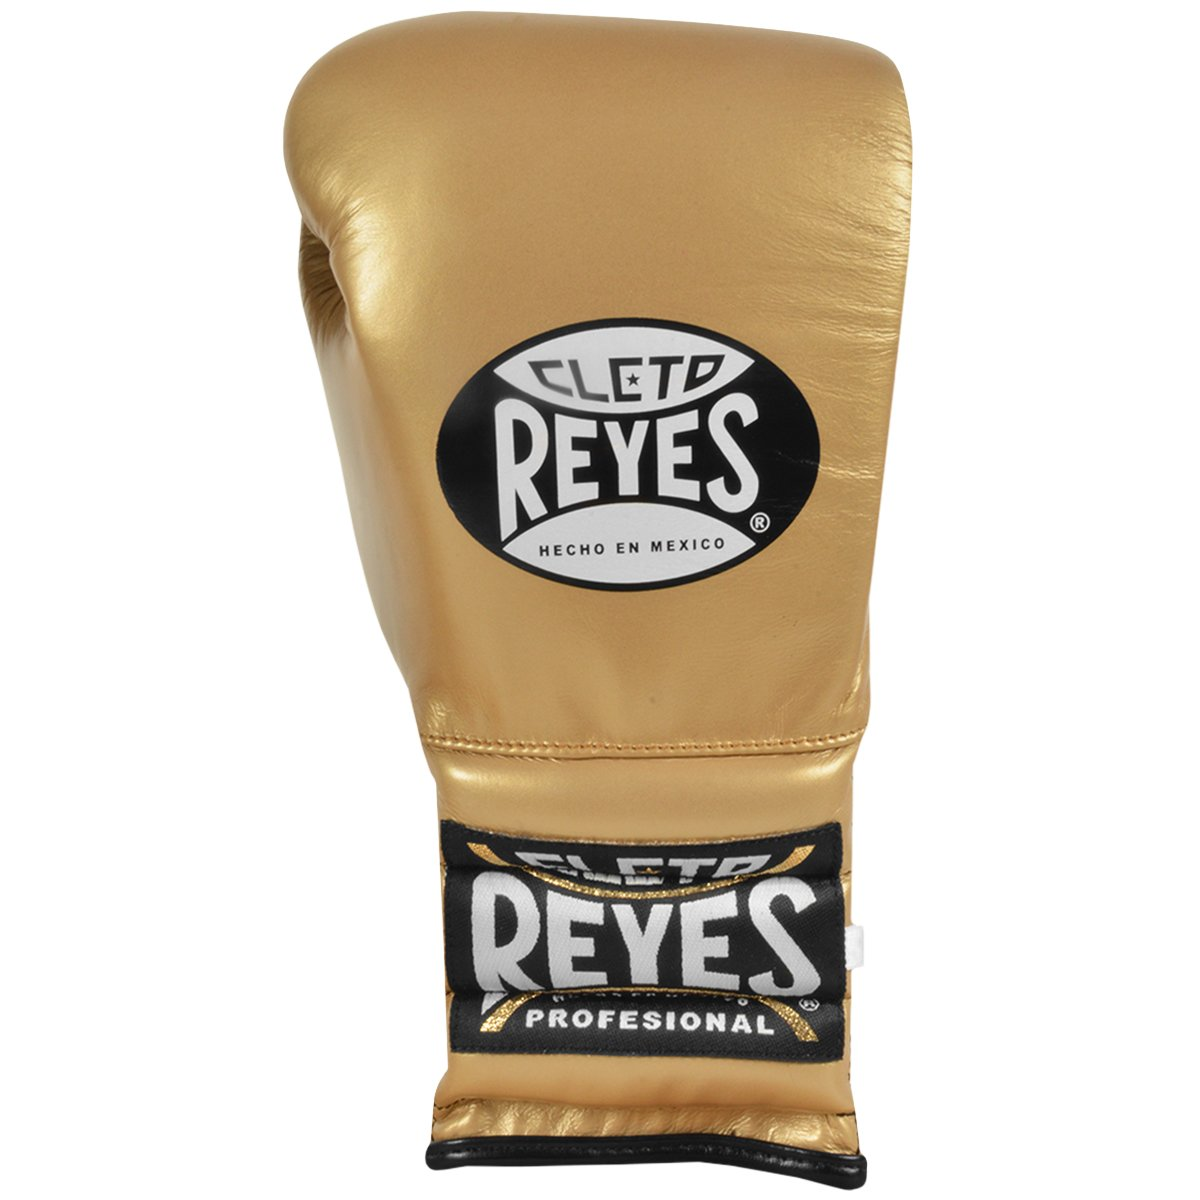 Cleto Reyes Traditional Lace Up Training Boxing Gloves - 16 oz. - Solid Gold by Cleto Reyes (Image #2)